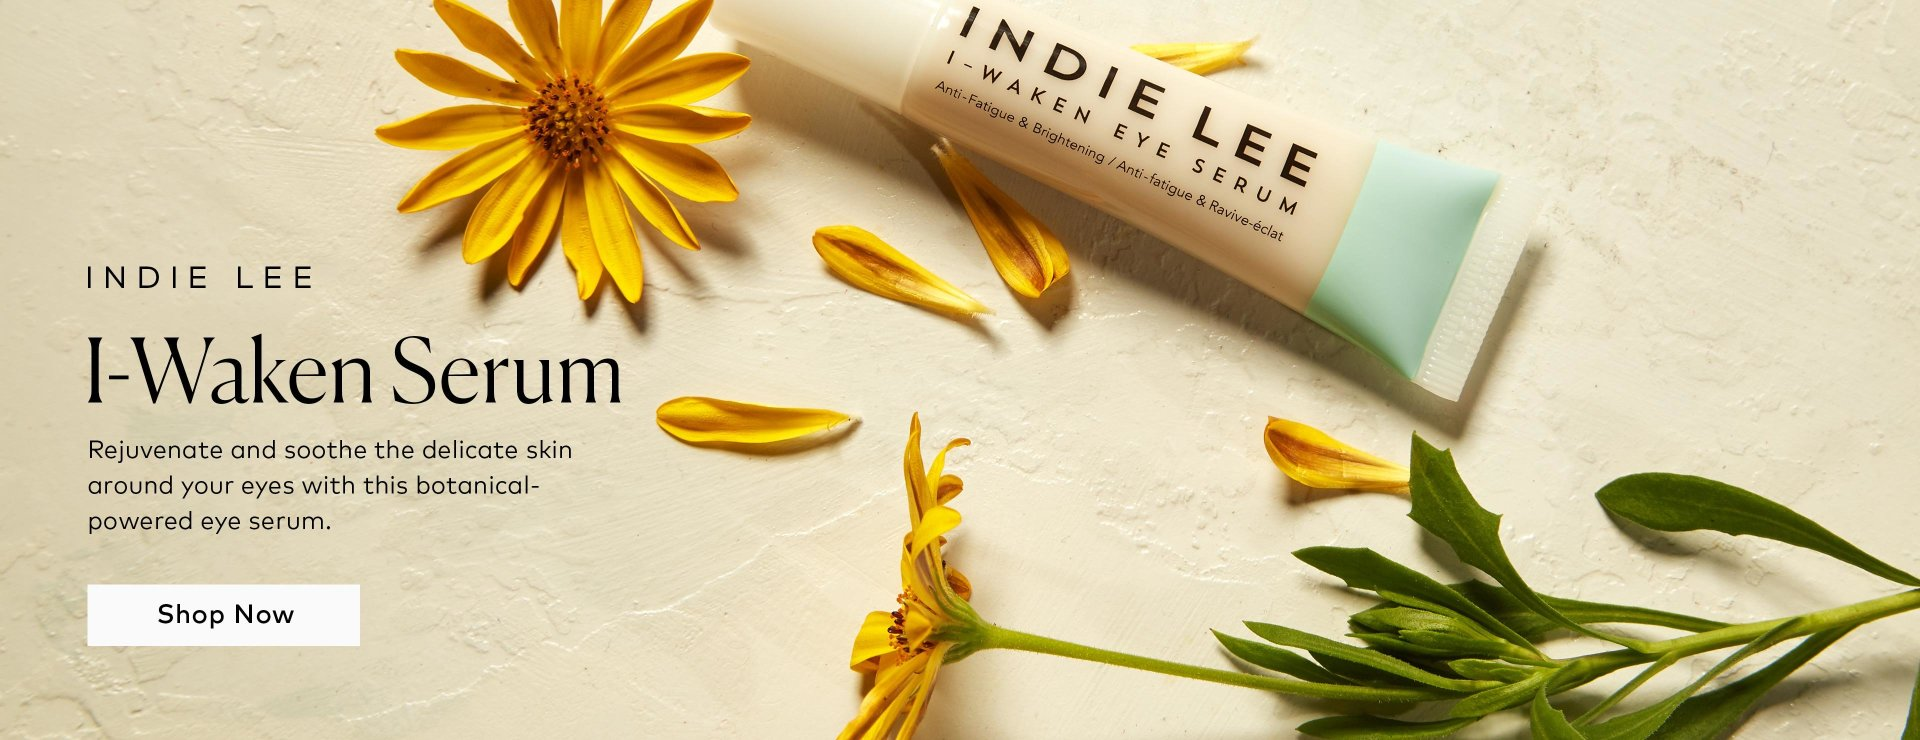 Indie Lee I-Waken Eye Serum – Shop now on Beautylish